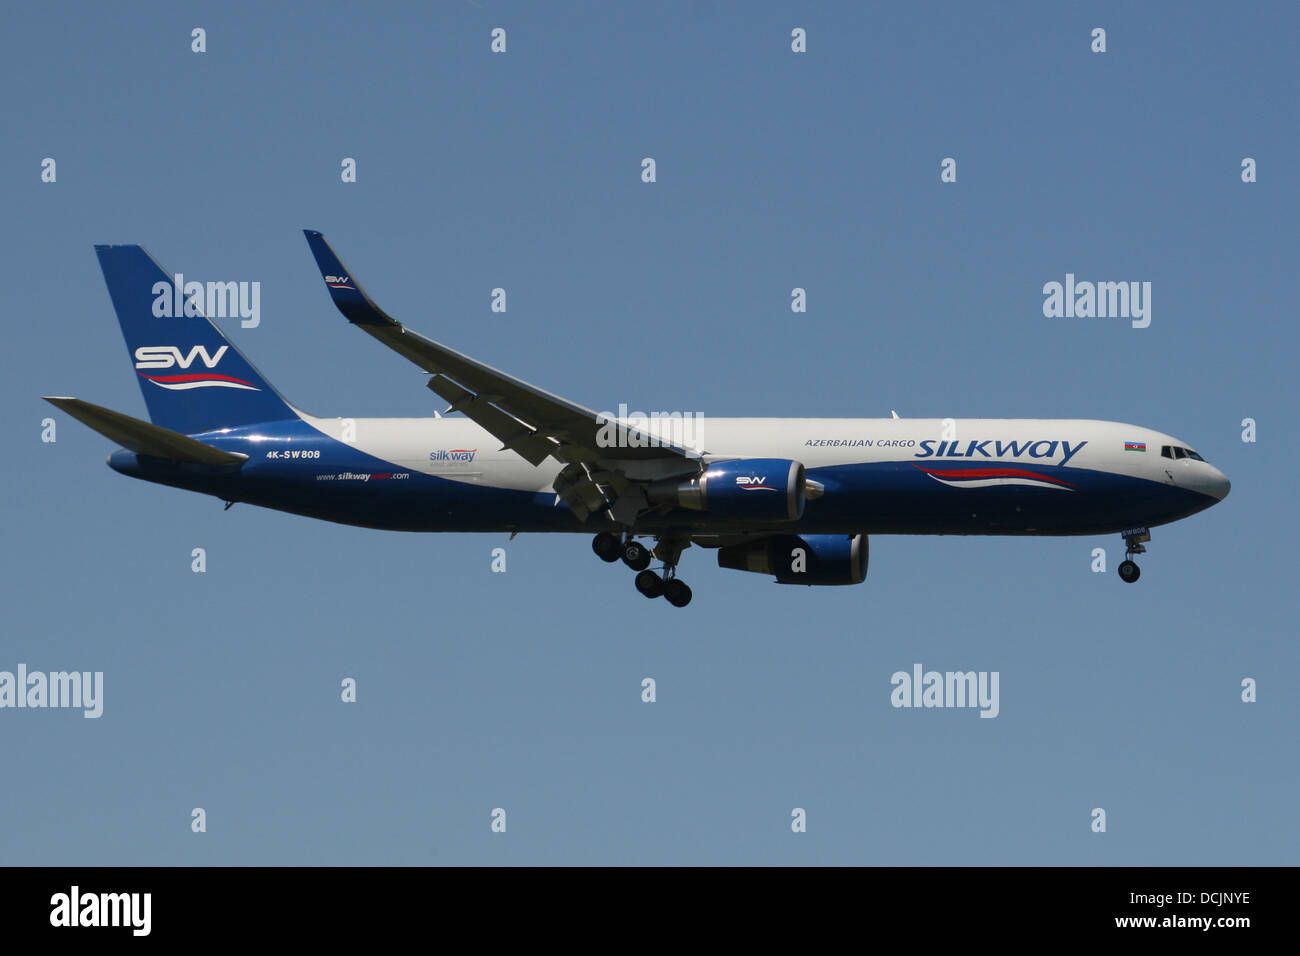 silkway airlines cargo boeing 767 - Stock Image